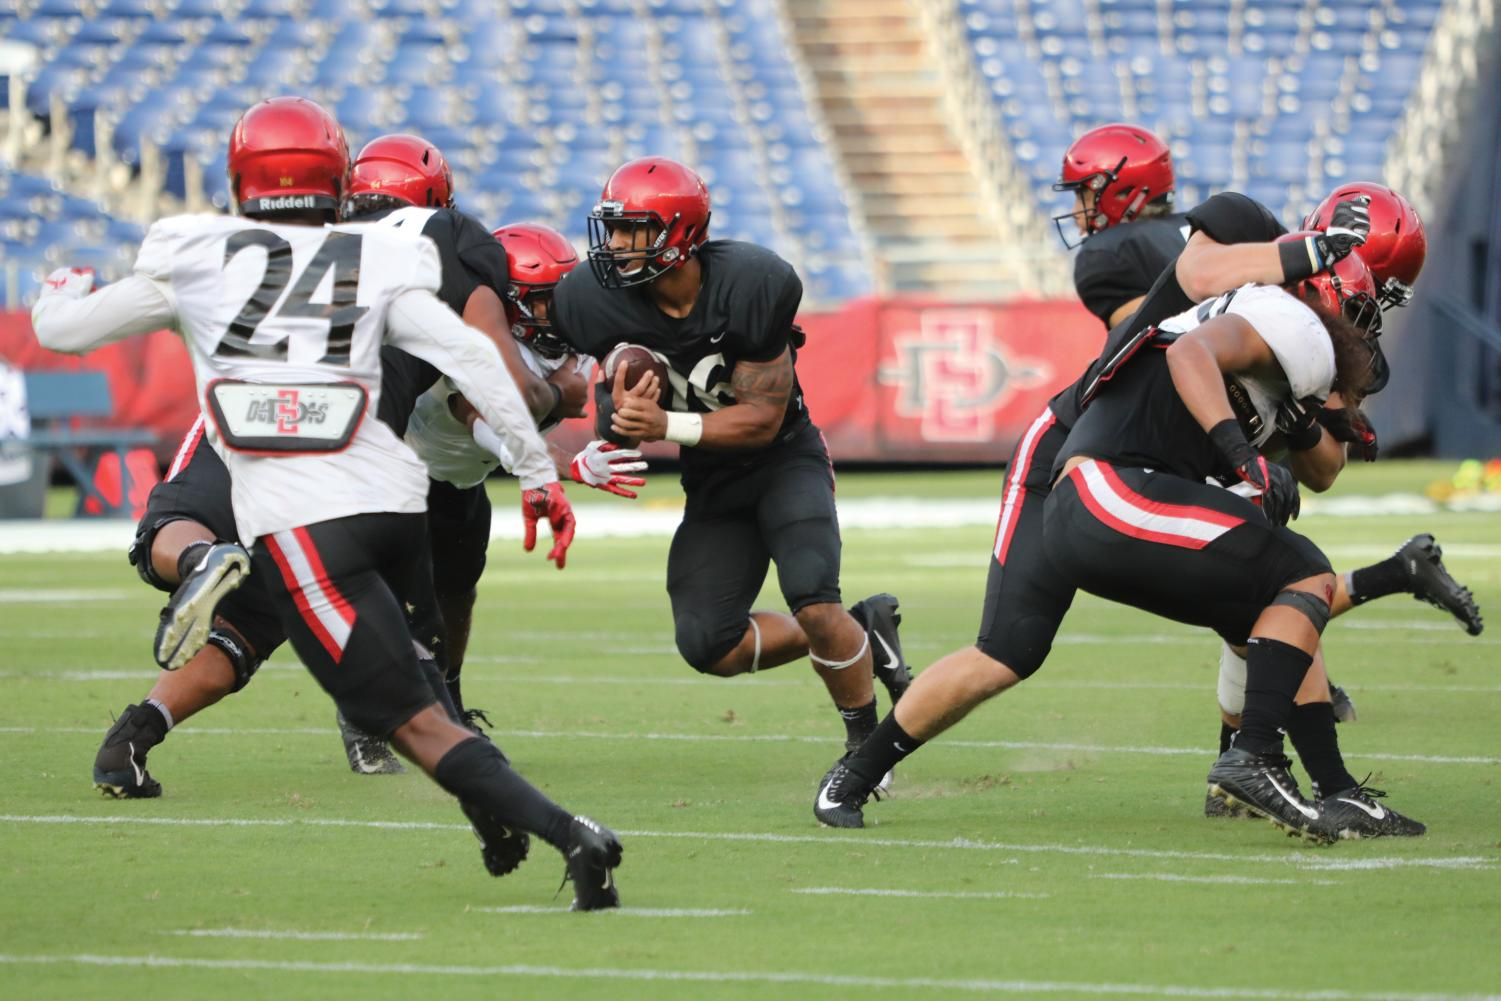 Sophomore running back Kaegun Williams runs through the defense during the Aztecs' scrimmage at the annual Fan Fest on Aug. 17 at SDCCU Stadium.